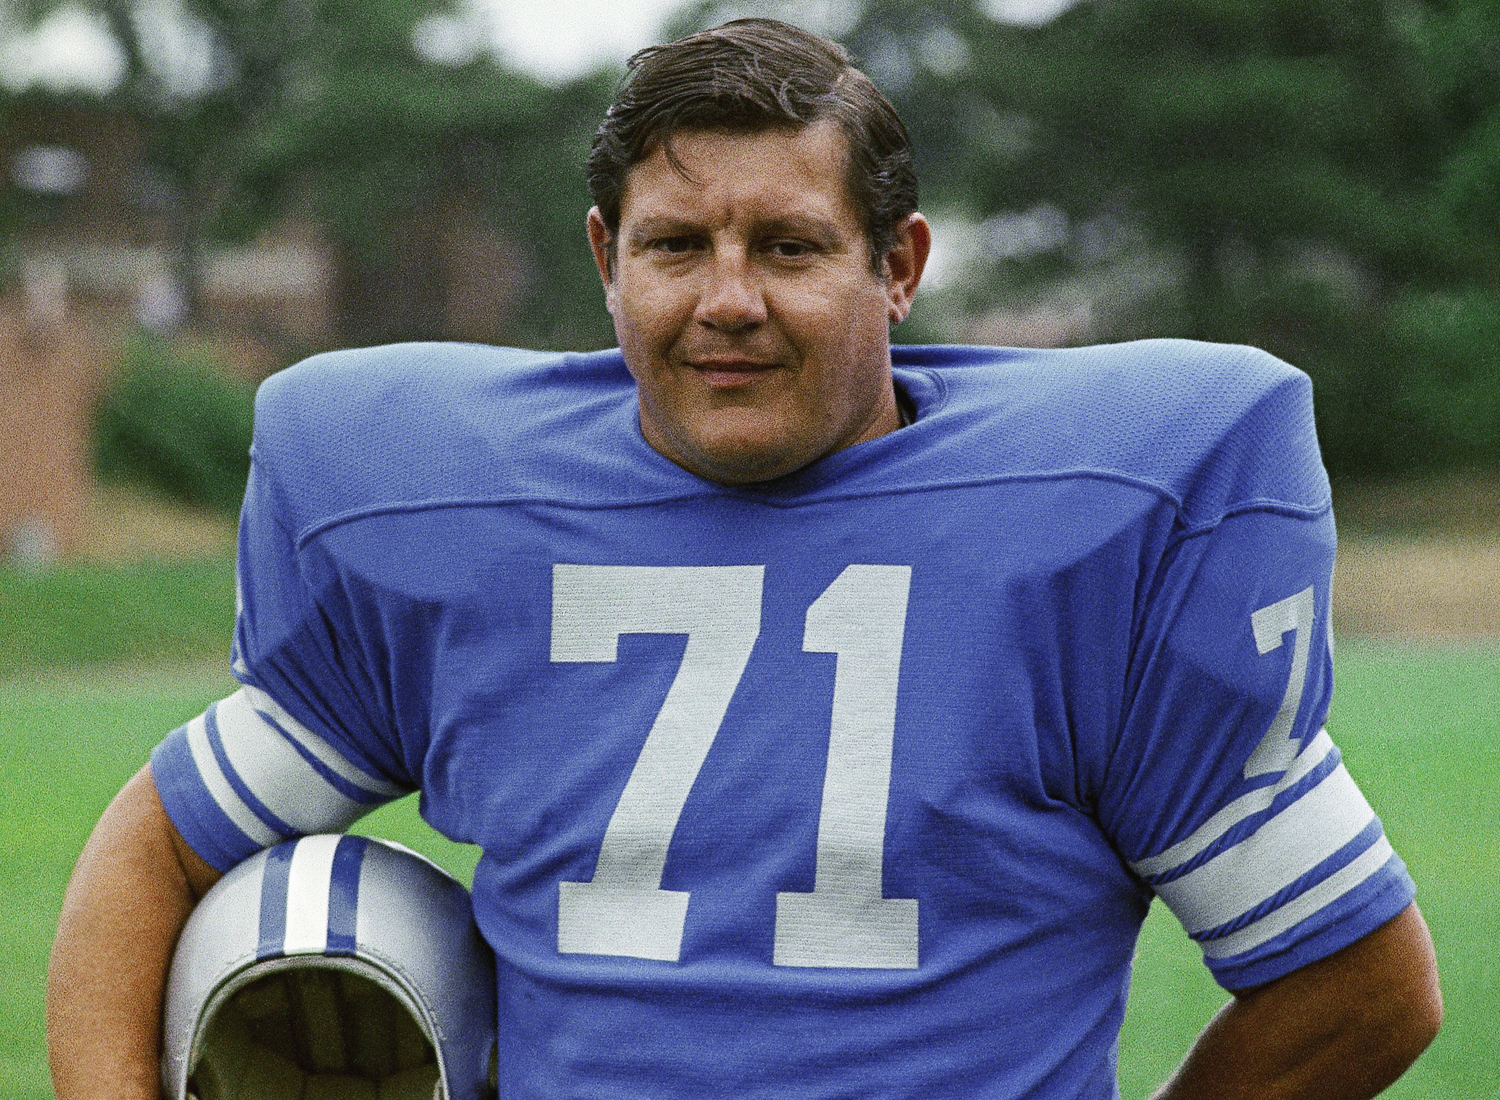 1958 NFL Draft, first round, Detroit Lions -- Karras played 12 seasons for the Lions (1958-1970) and was a four-time Pro Bowl selection. (AP Photo)